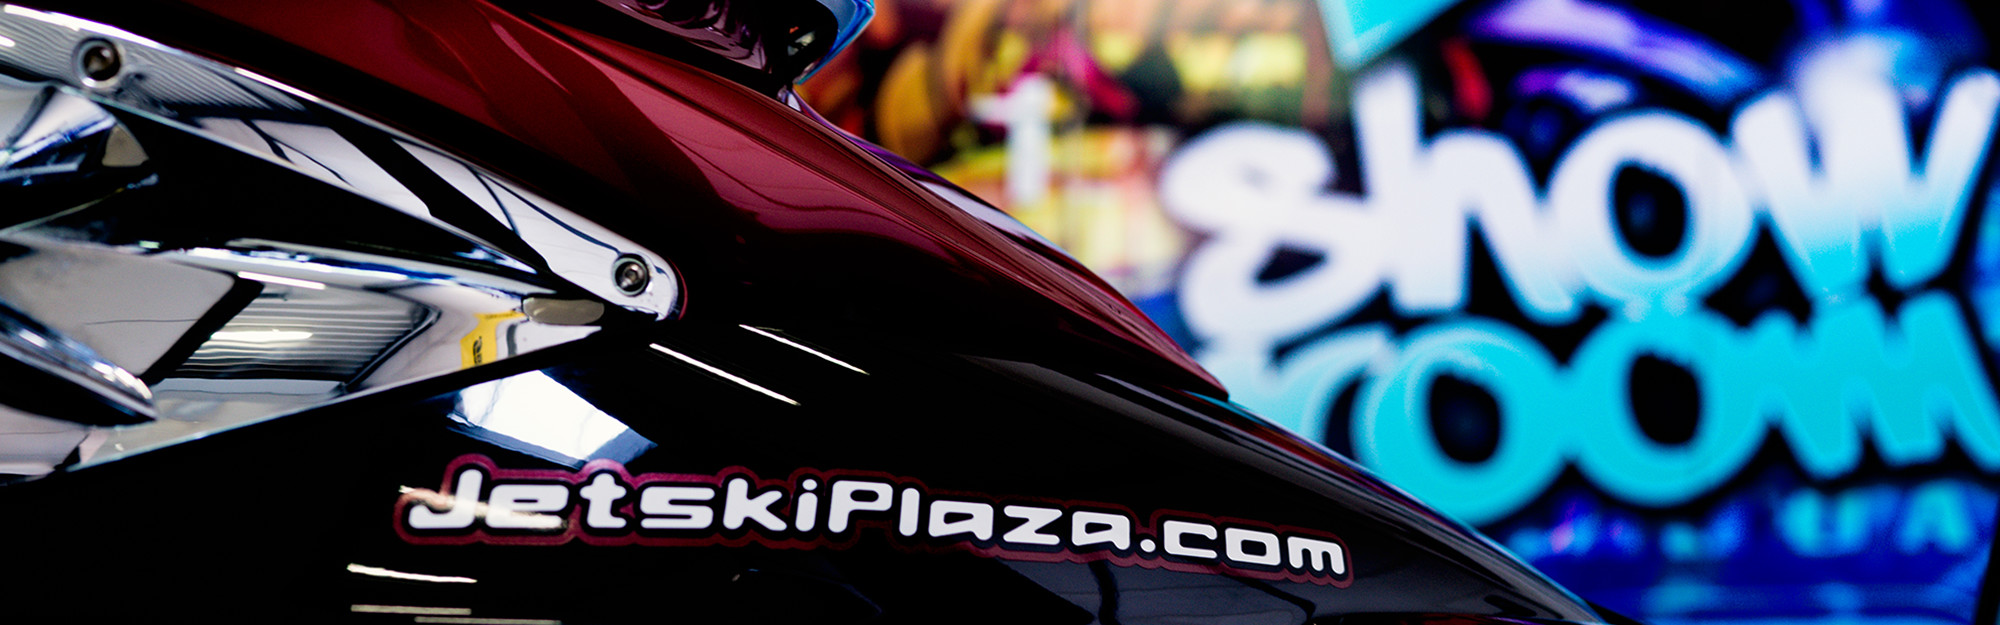 Showroom Jetski Plaza